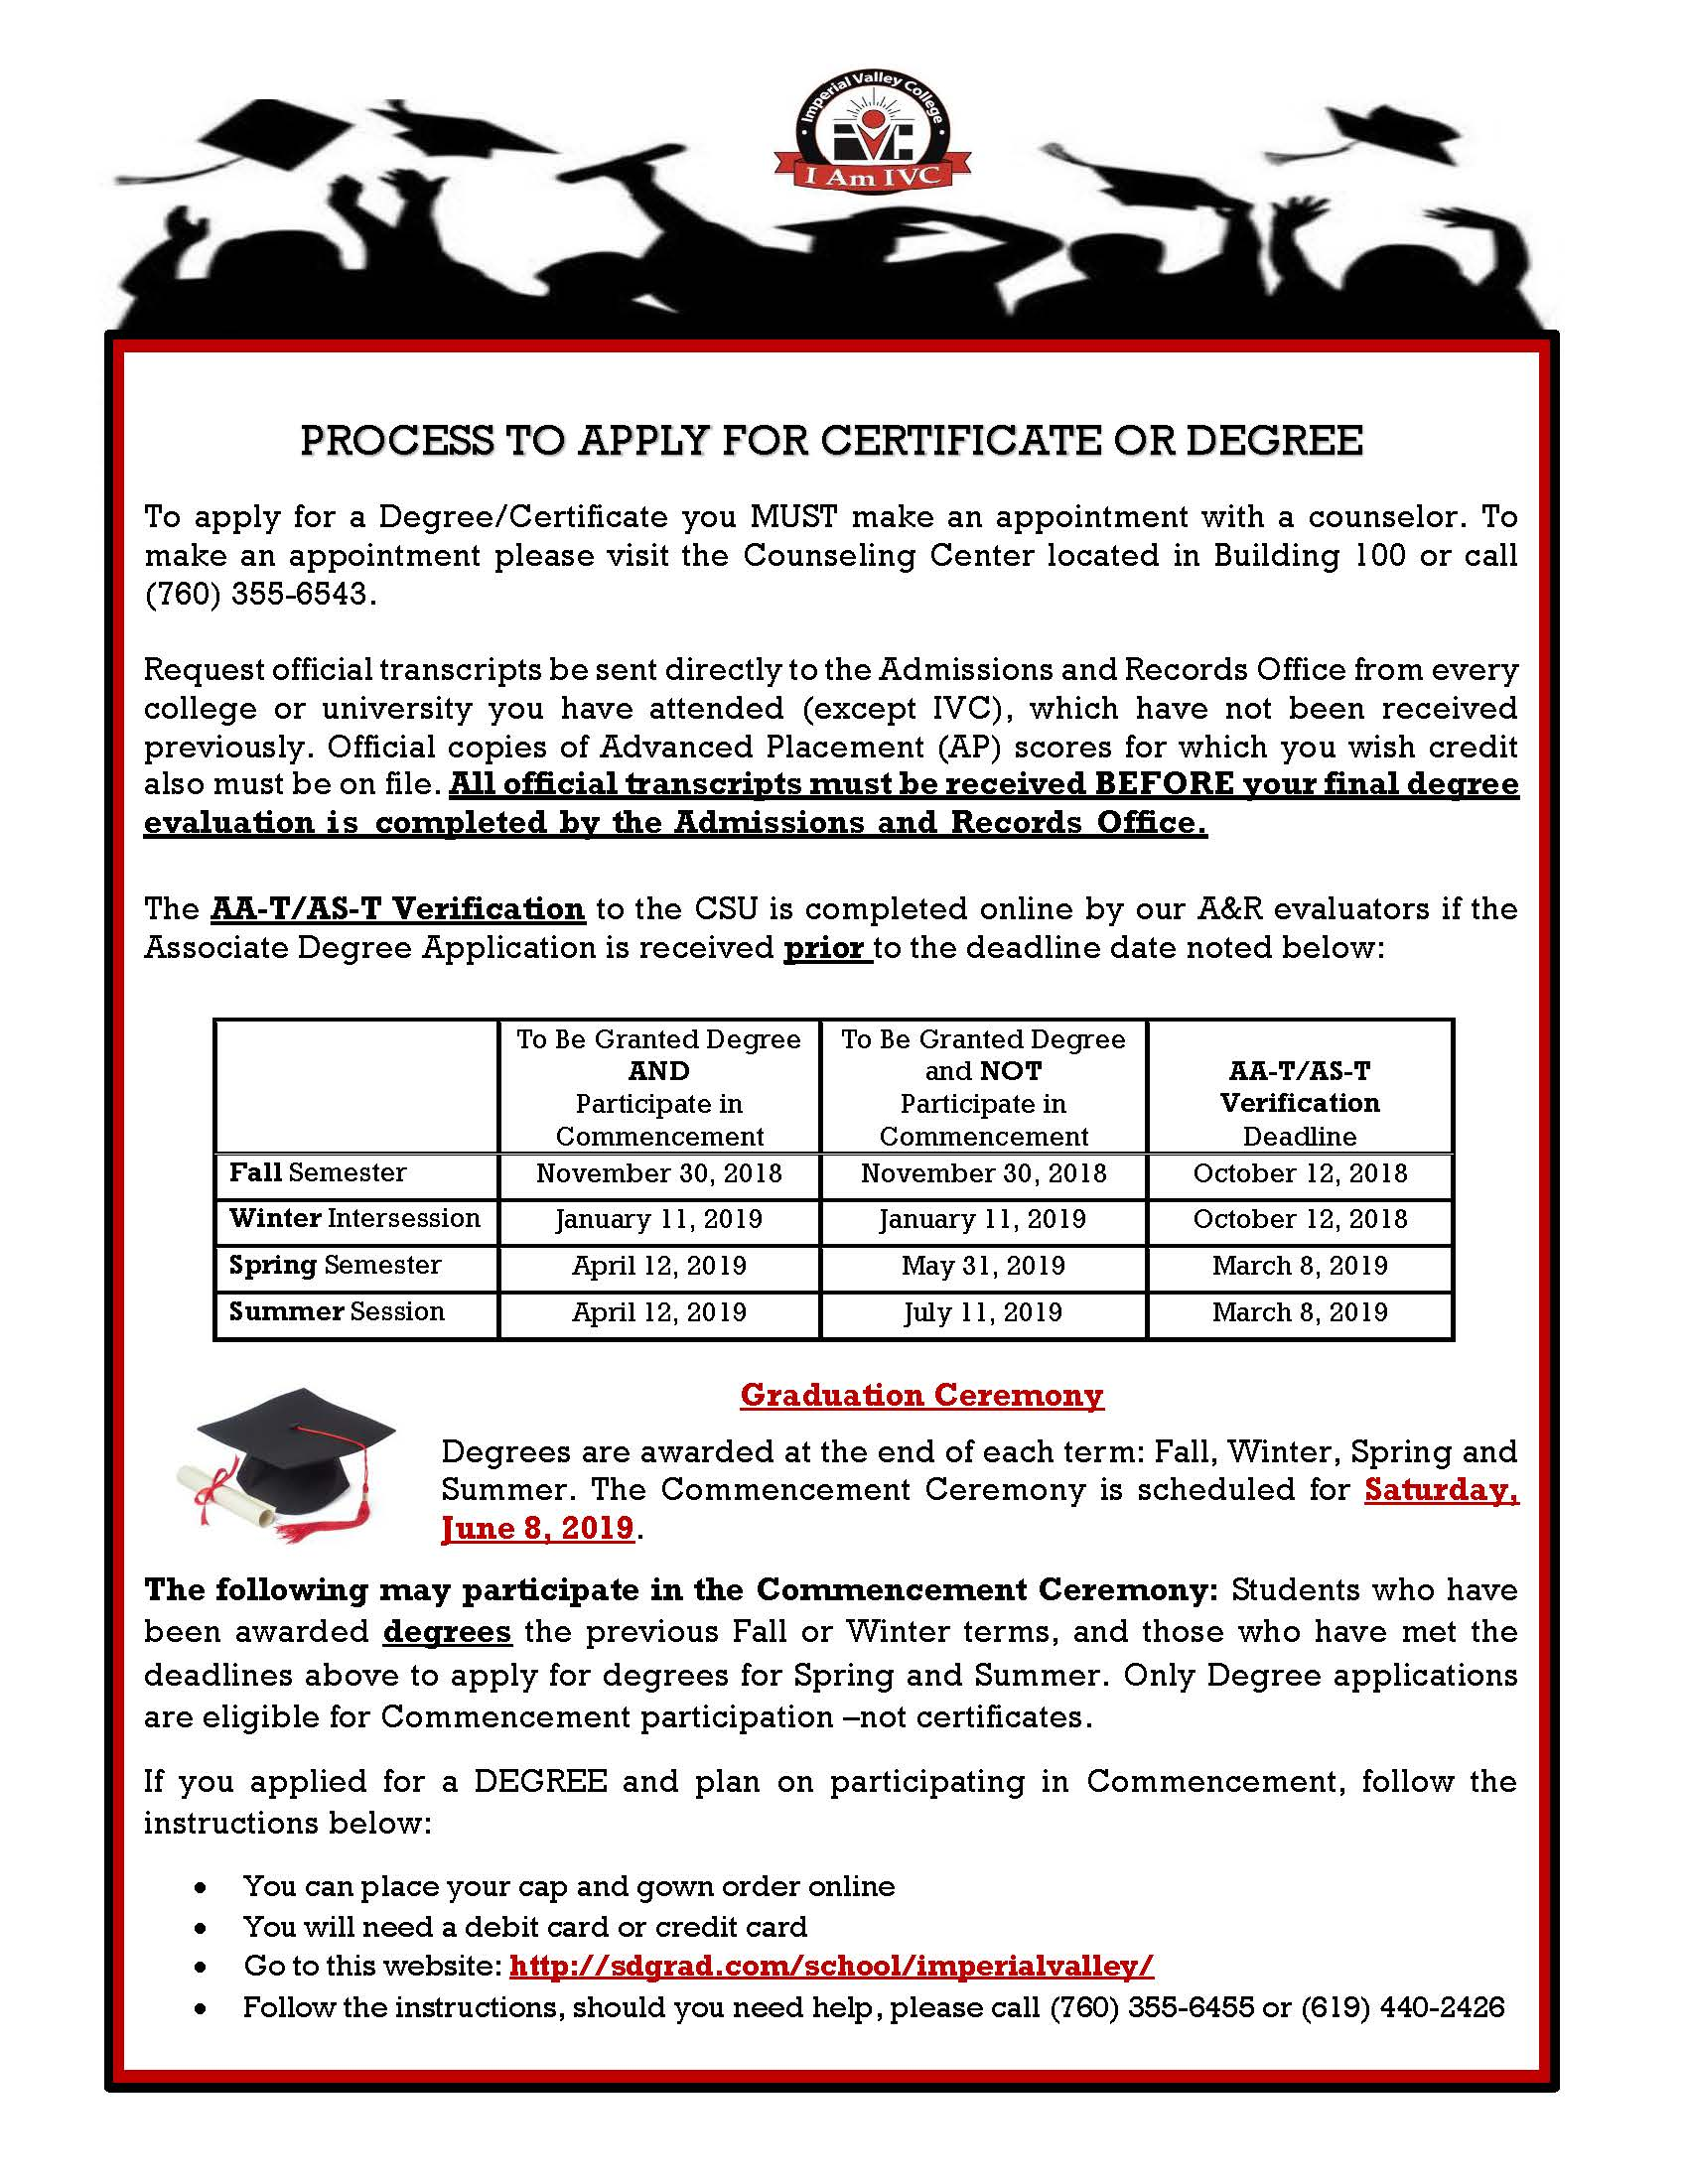 Process to Apply for Certificate or Degree 2018 19